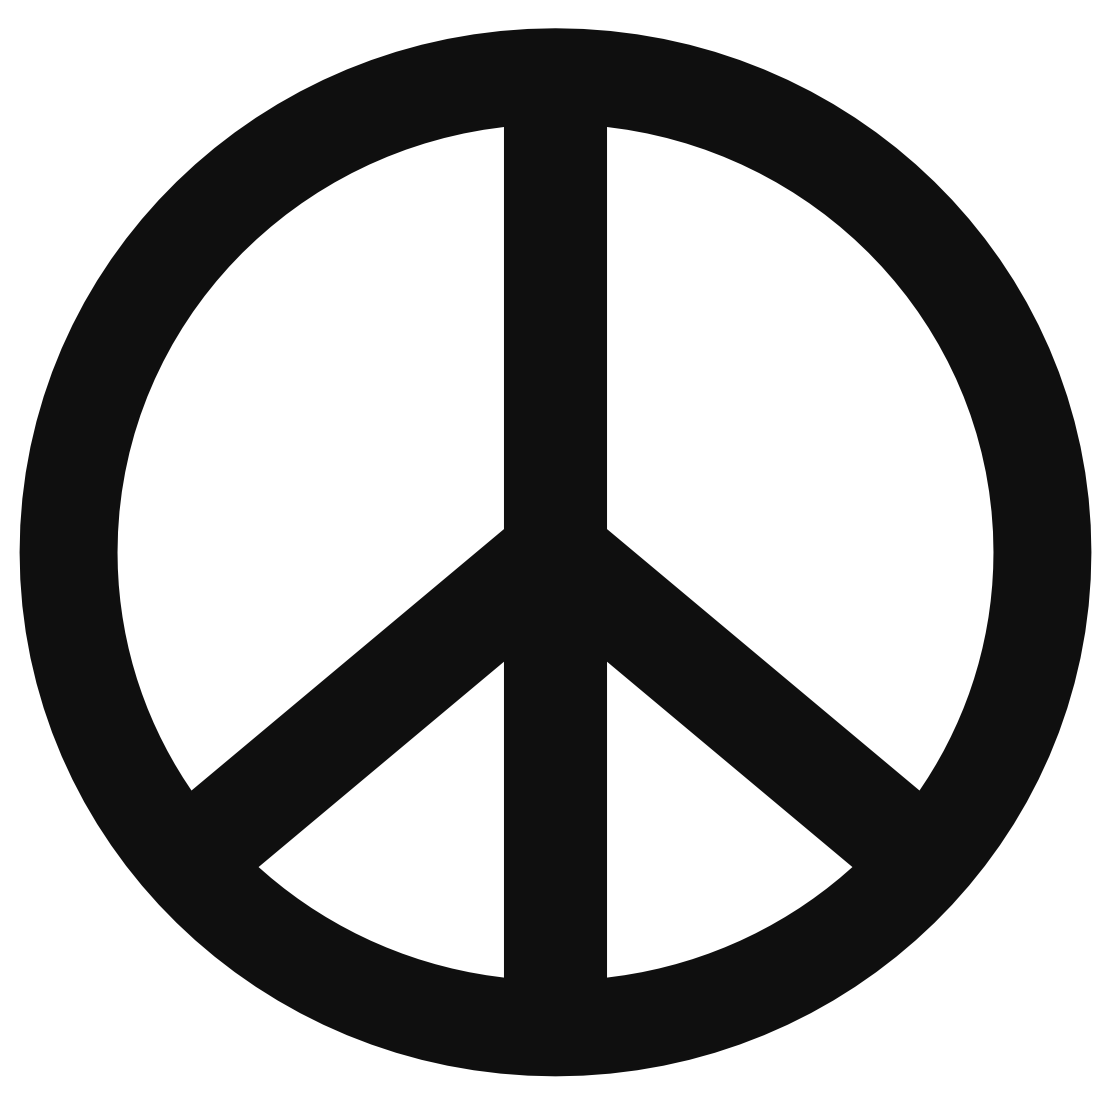 Templates clipartix. Peace clipart peace sign